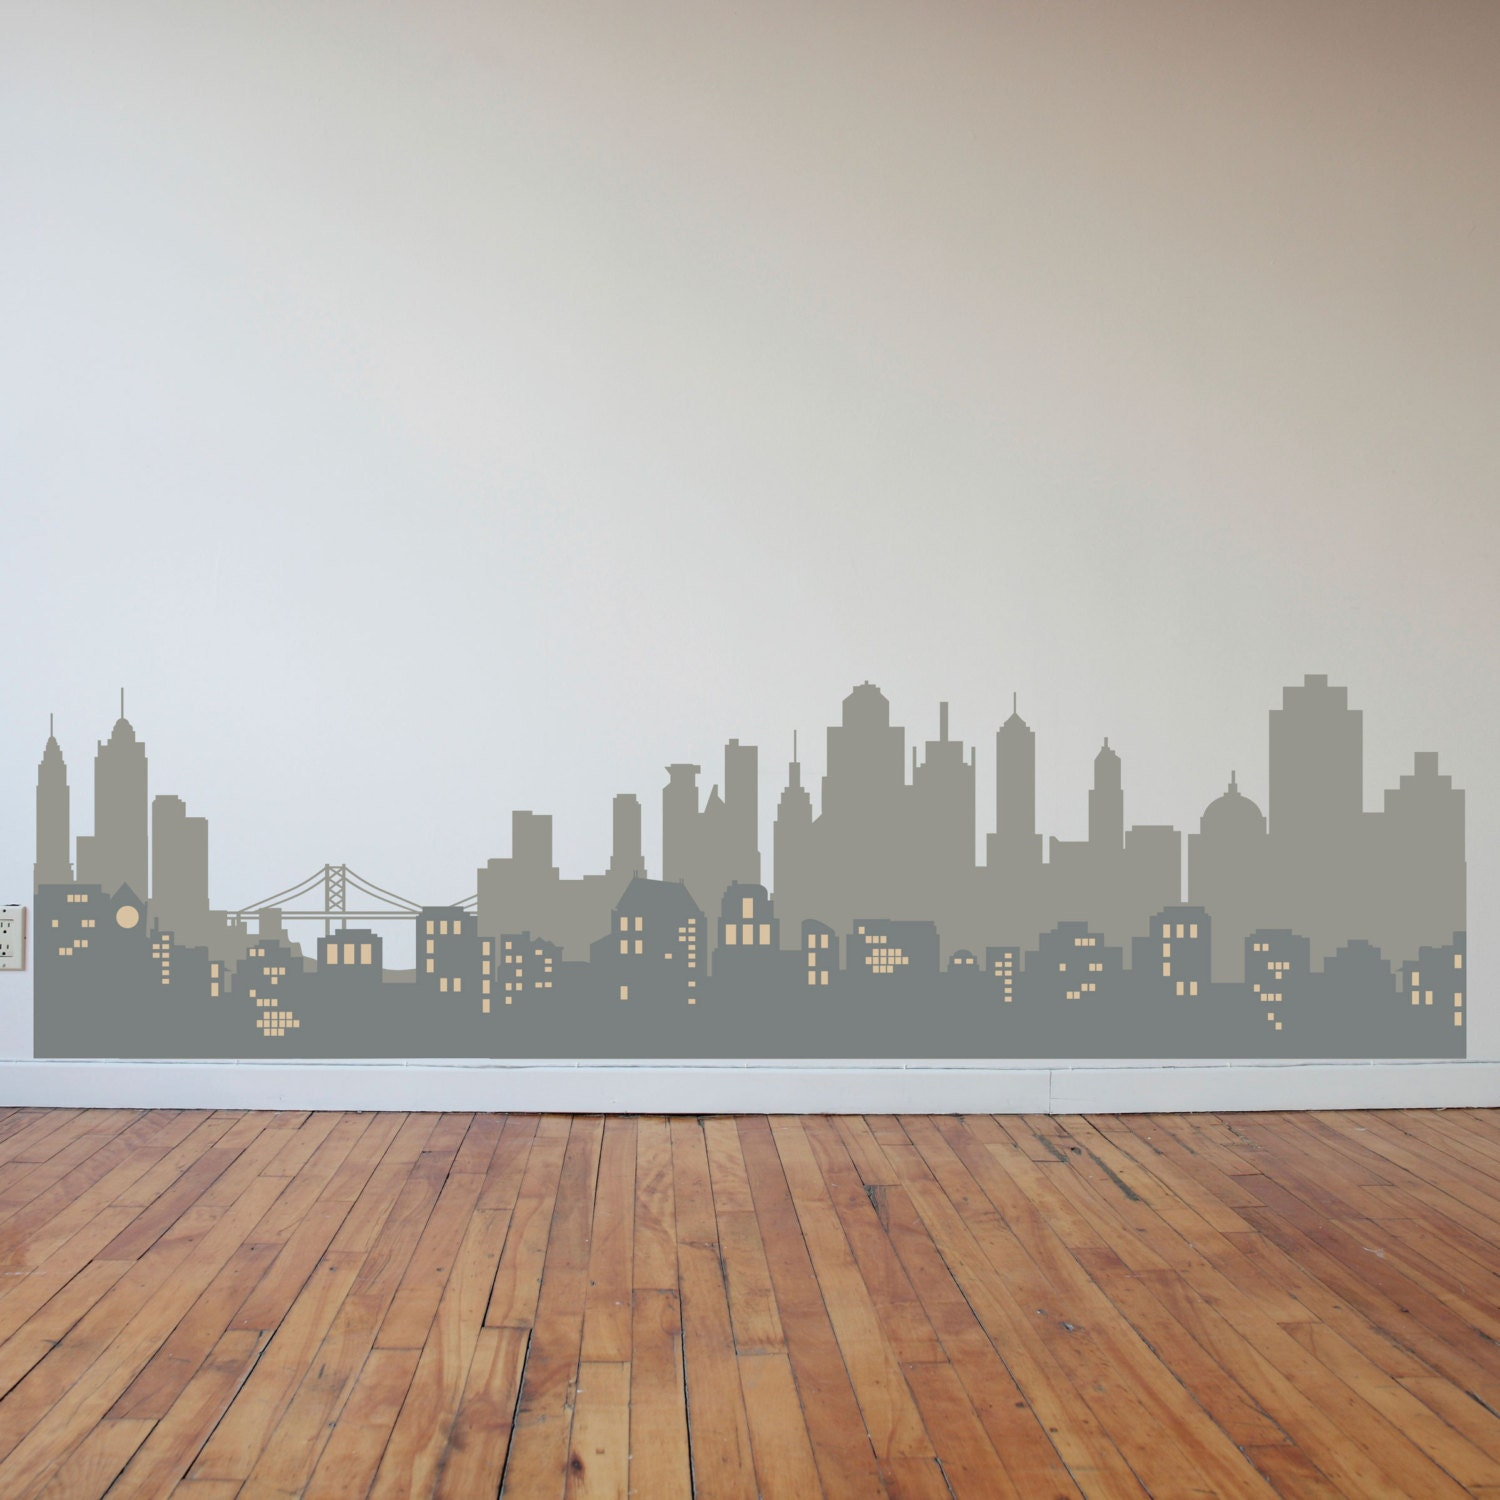 Layered city skyline silhouette with city lights wall decal for Cityscape wall mural